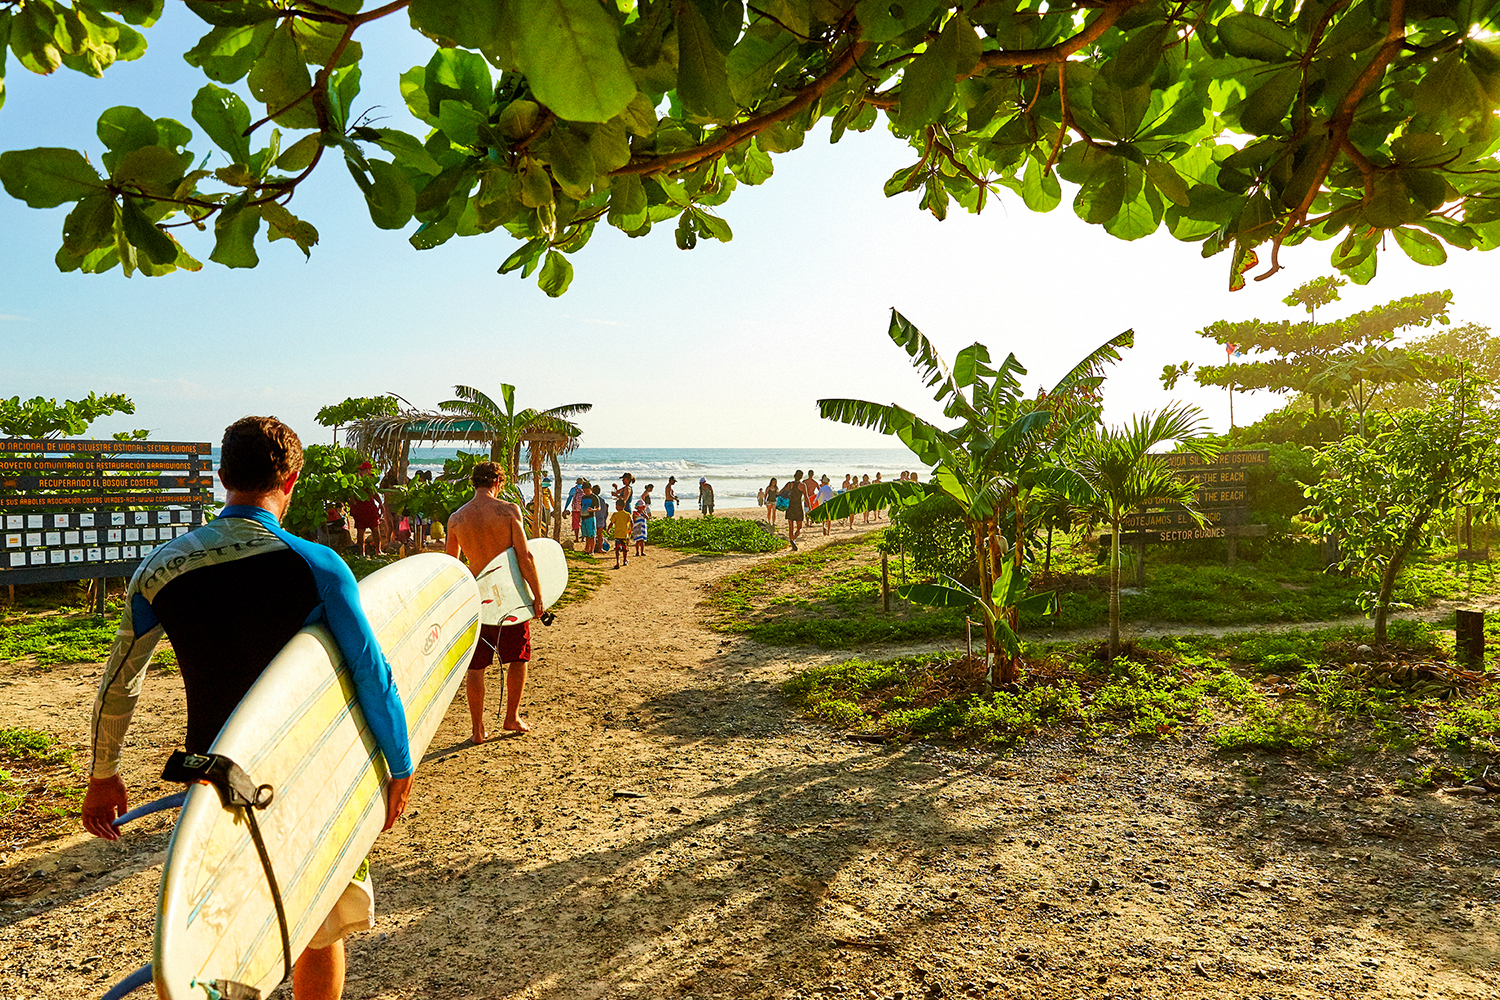 HEADING OUT FOR THE DAILY SUNSET SESSION. PLAYA GUIONES, NOSARA